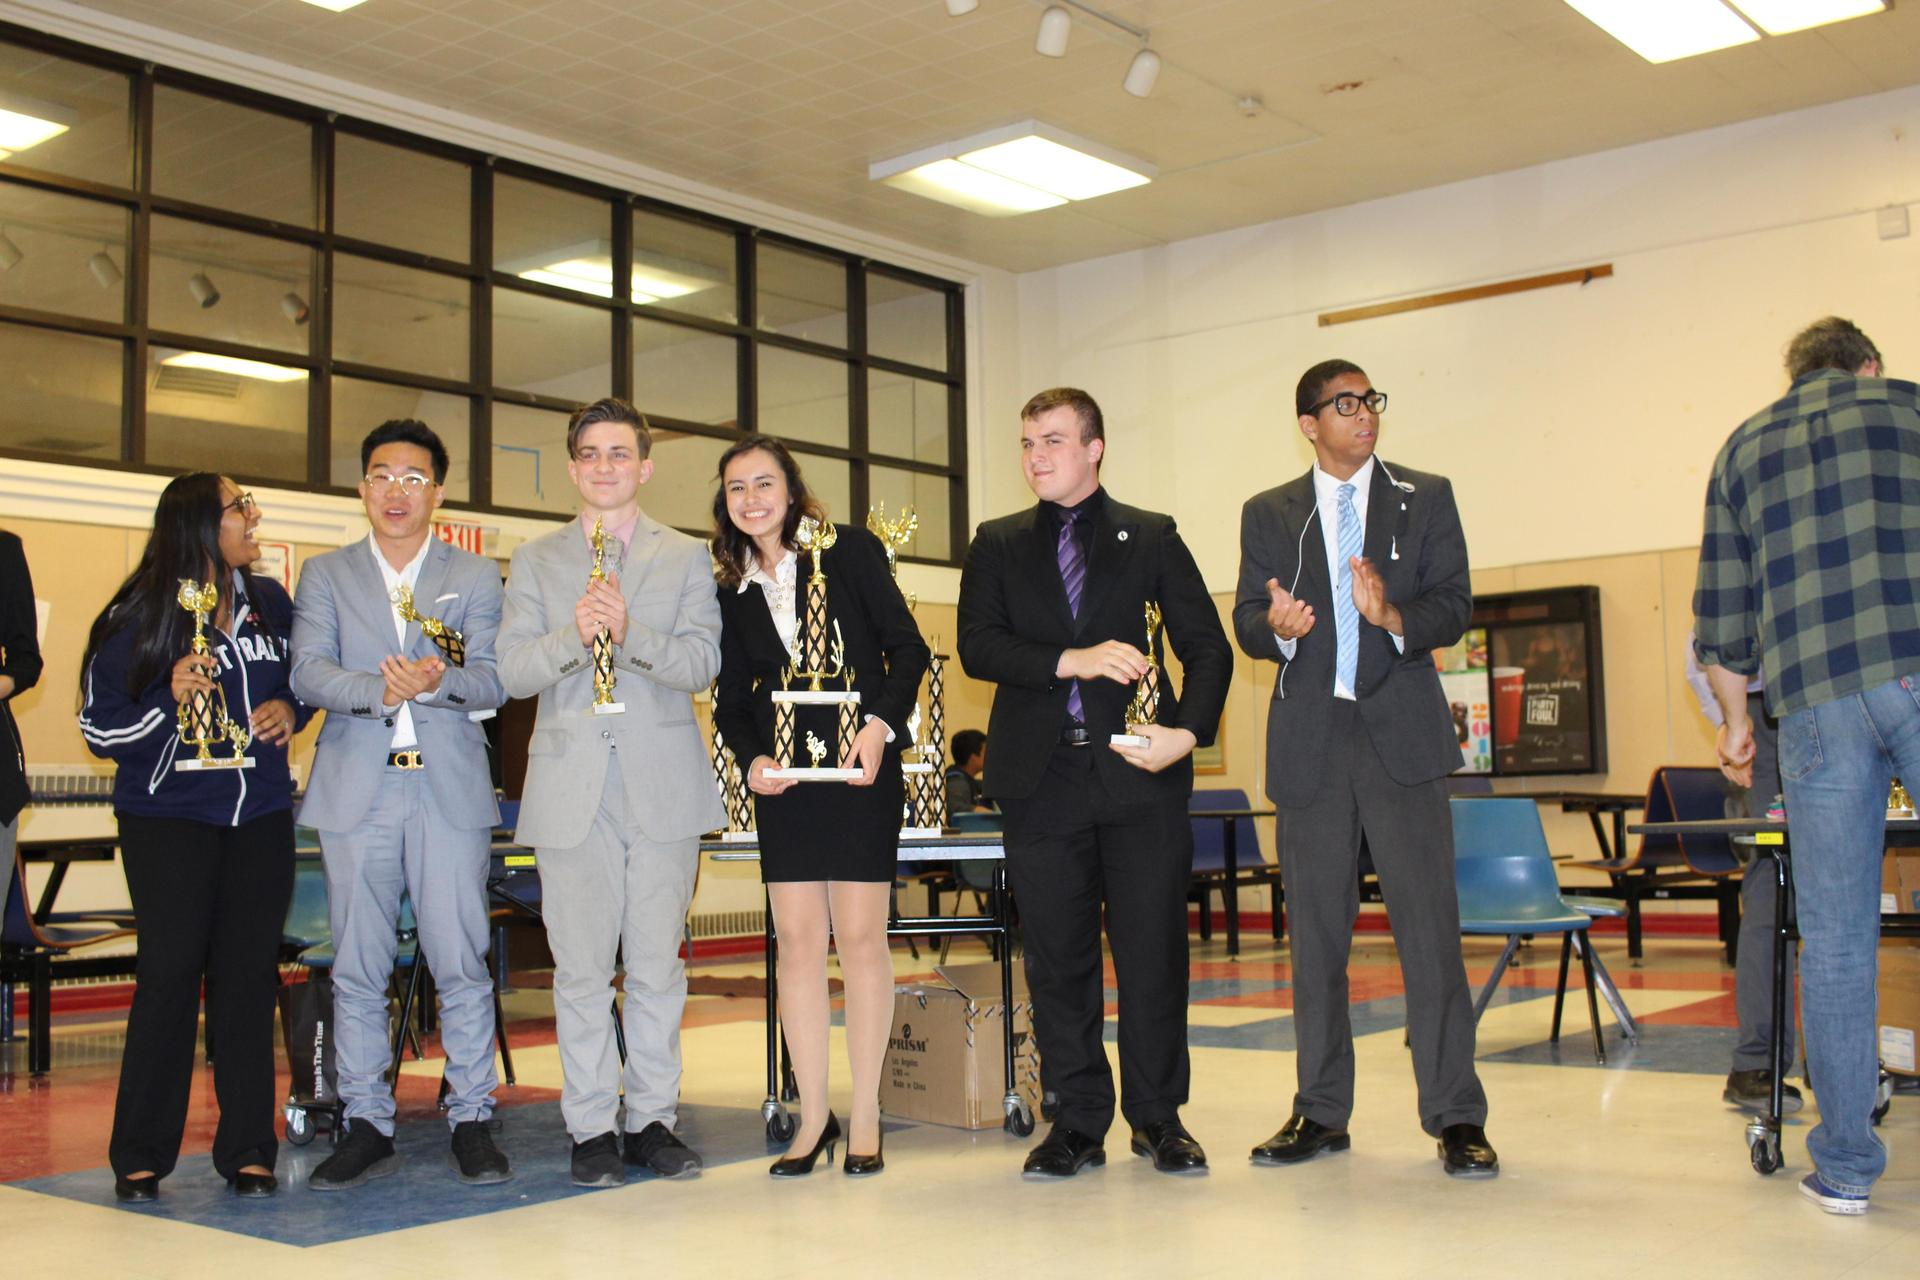 Andrea Jimenez poses with the trophy for winning the Speech and Debate Valley Championship for Original Oratory.